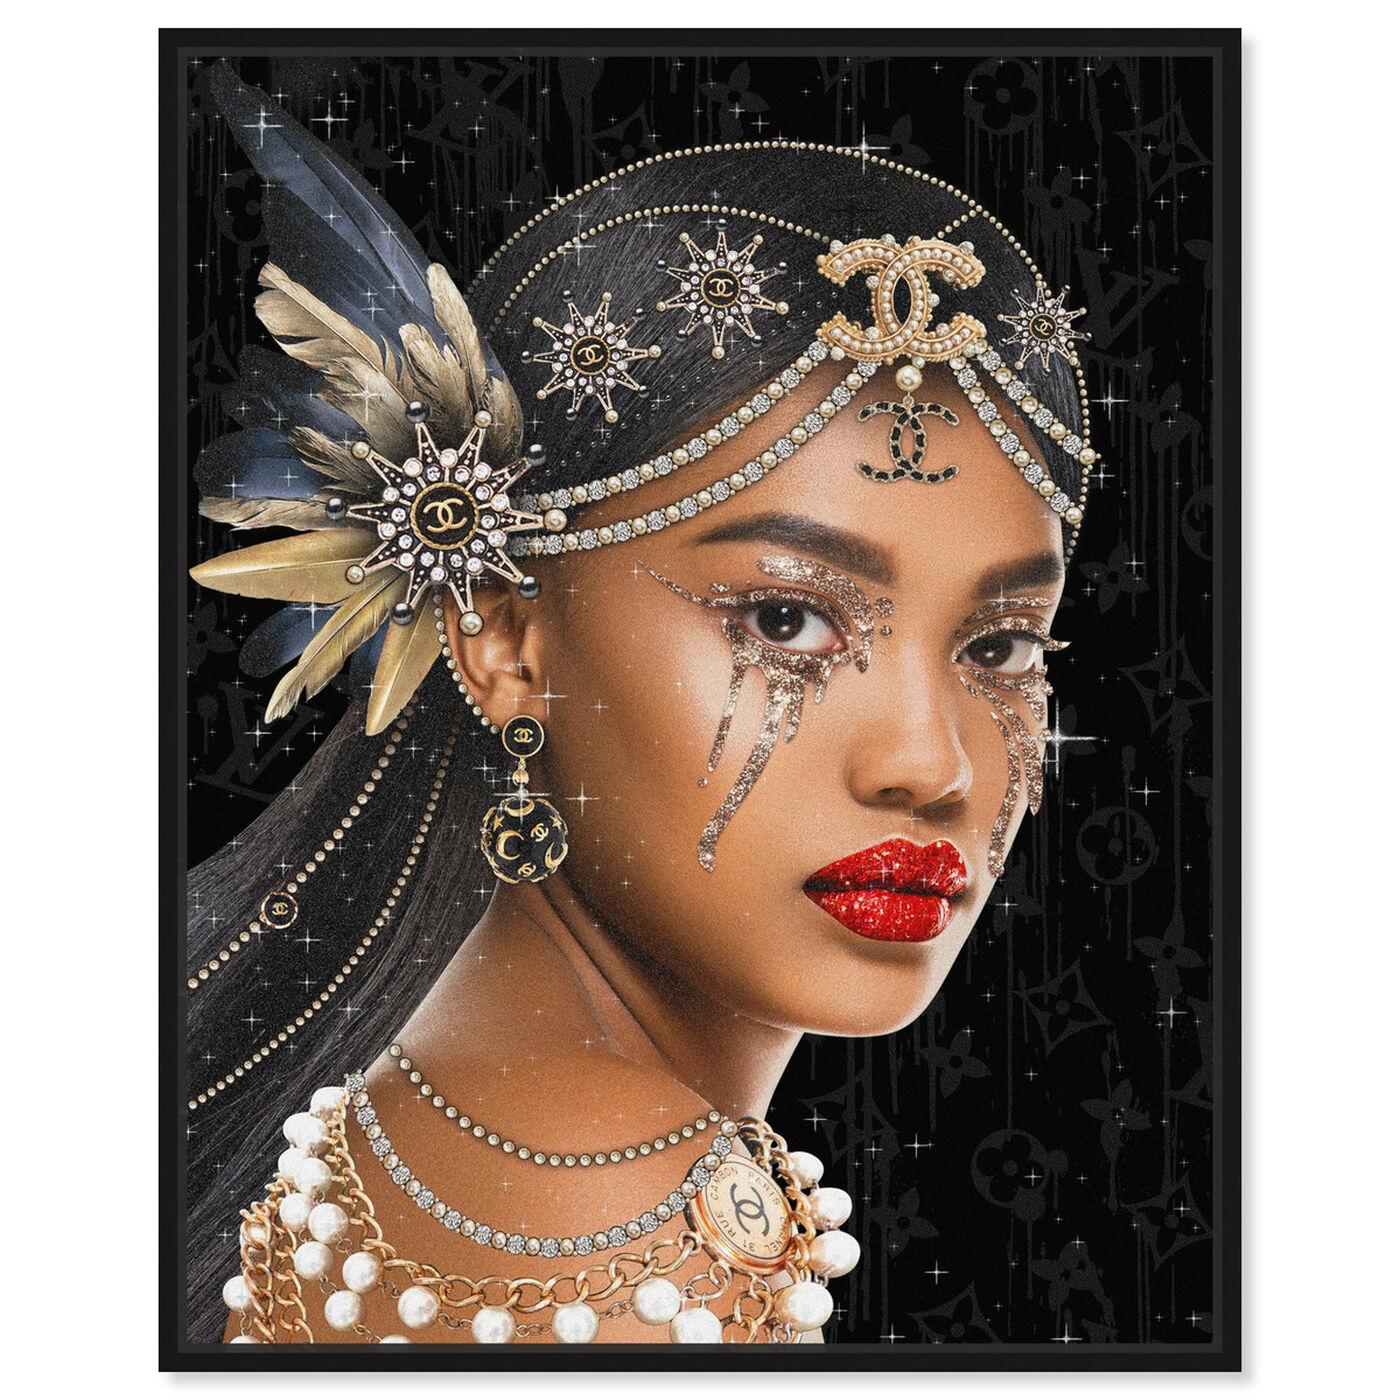 Front view of Haute Queen featuring fashion and glam and portraits art.